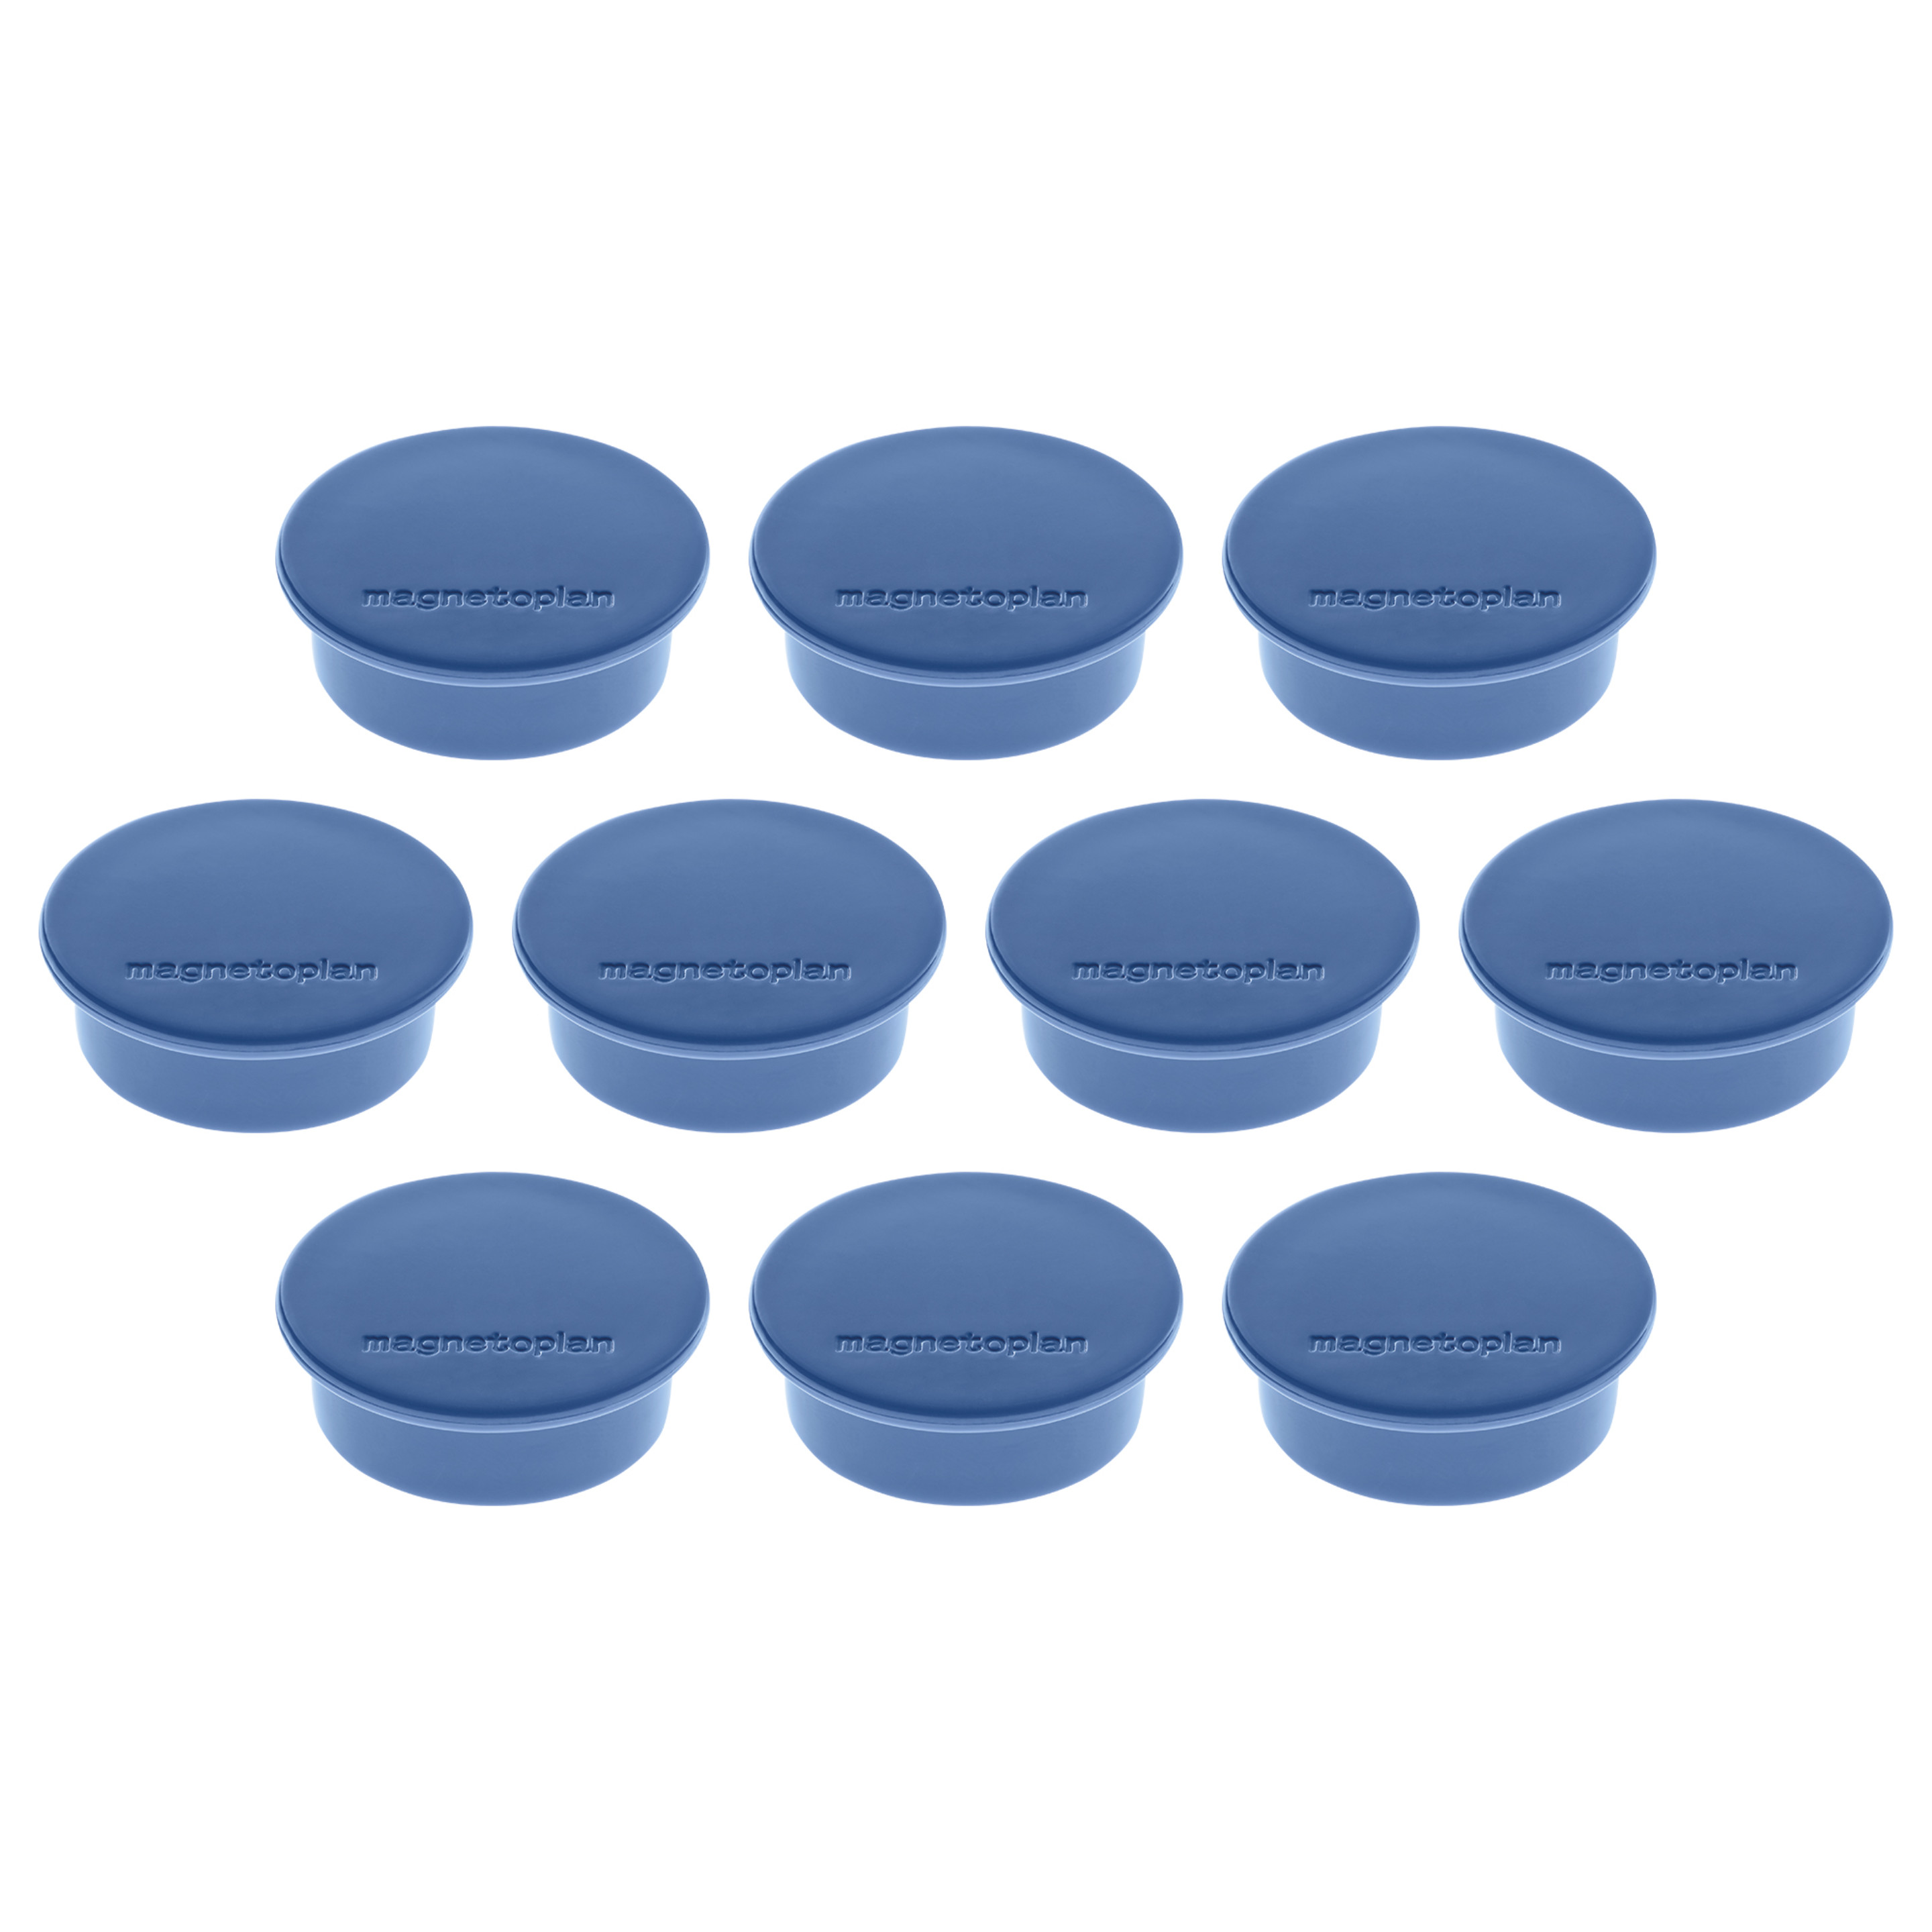 Magnetoplan Magnetic Discofix Mini - Dark Blue (pkt/10pcs)